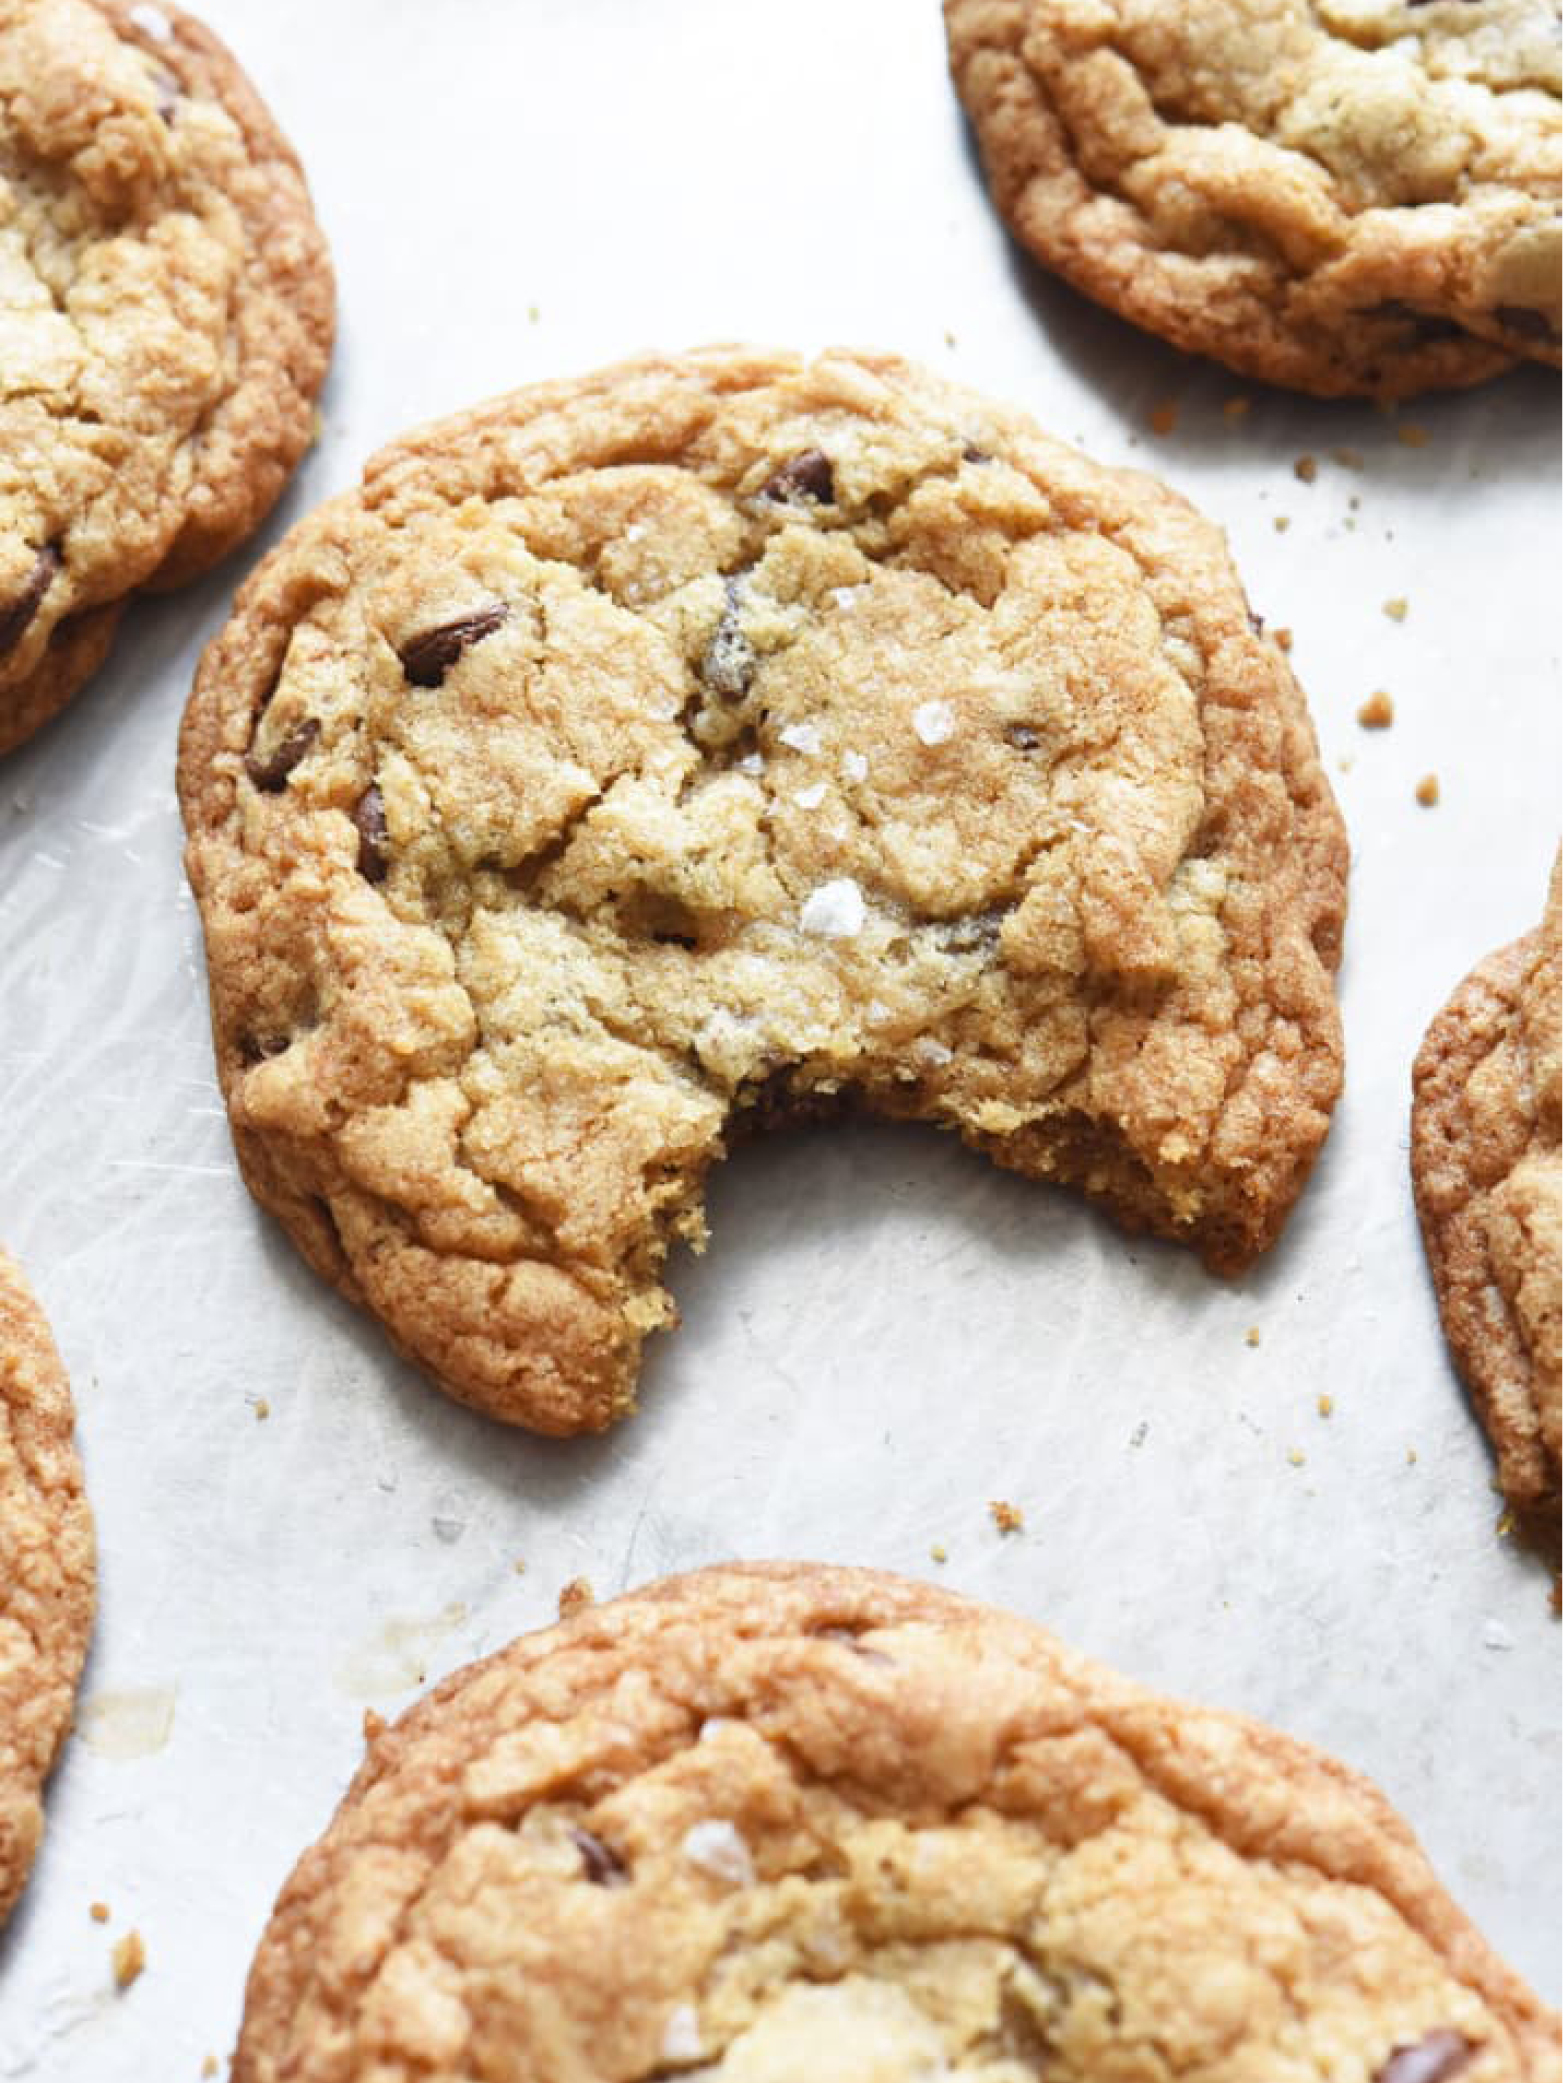 Here's How To Make The World's Greatest Chocolate Chip Cookies  Buzzfeed